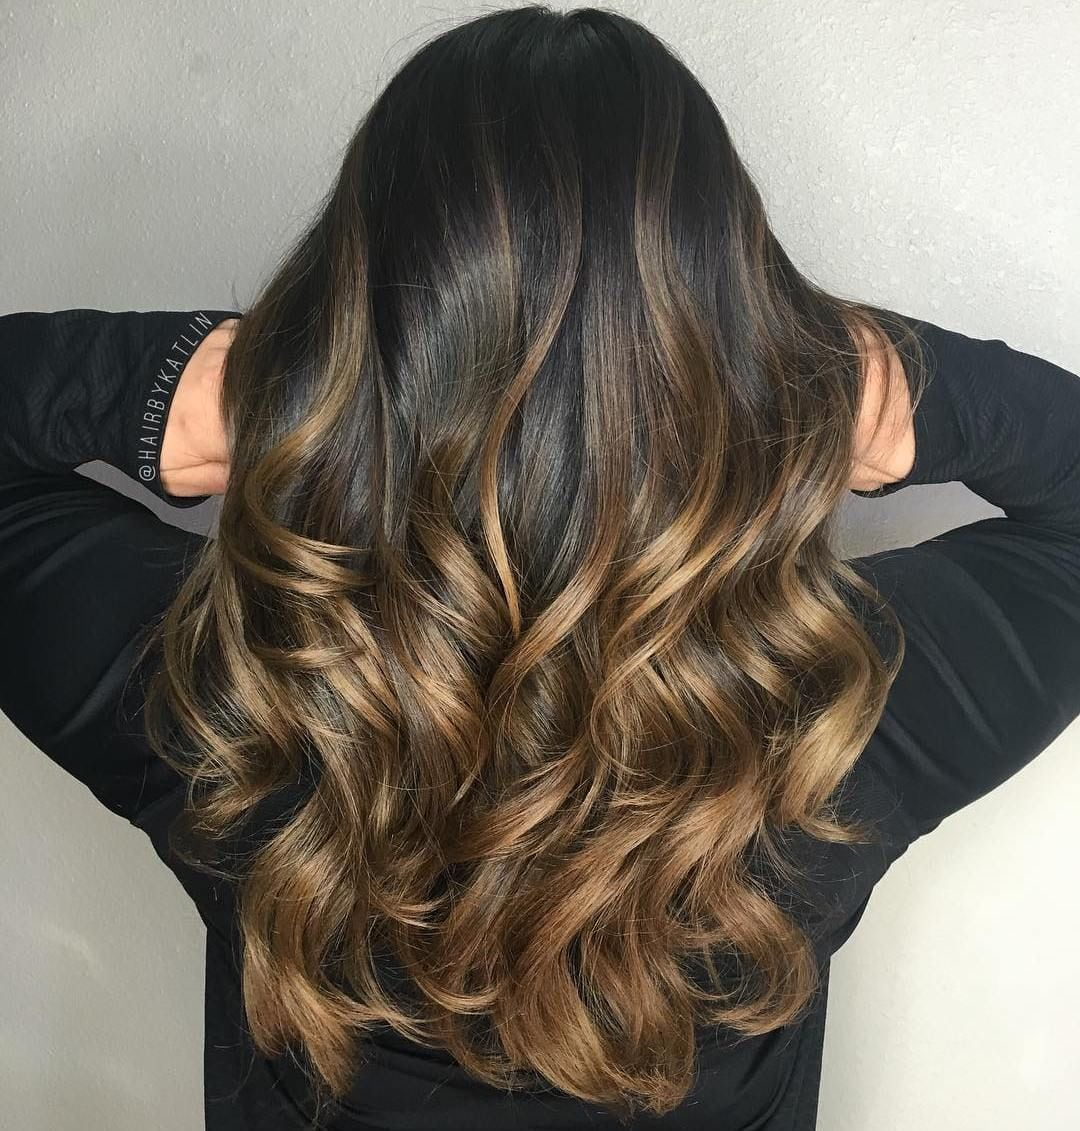 60 Best Ombre Hair Color Ideas For Blond, Brown, Red And Black